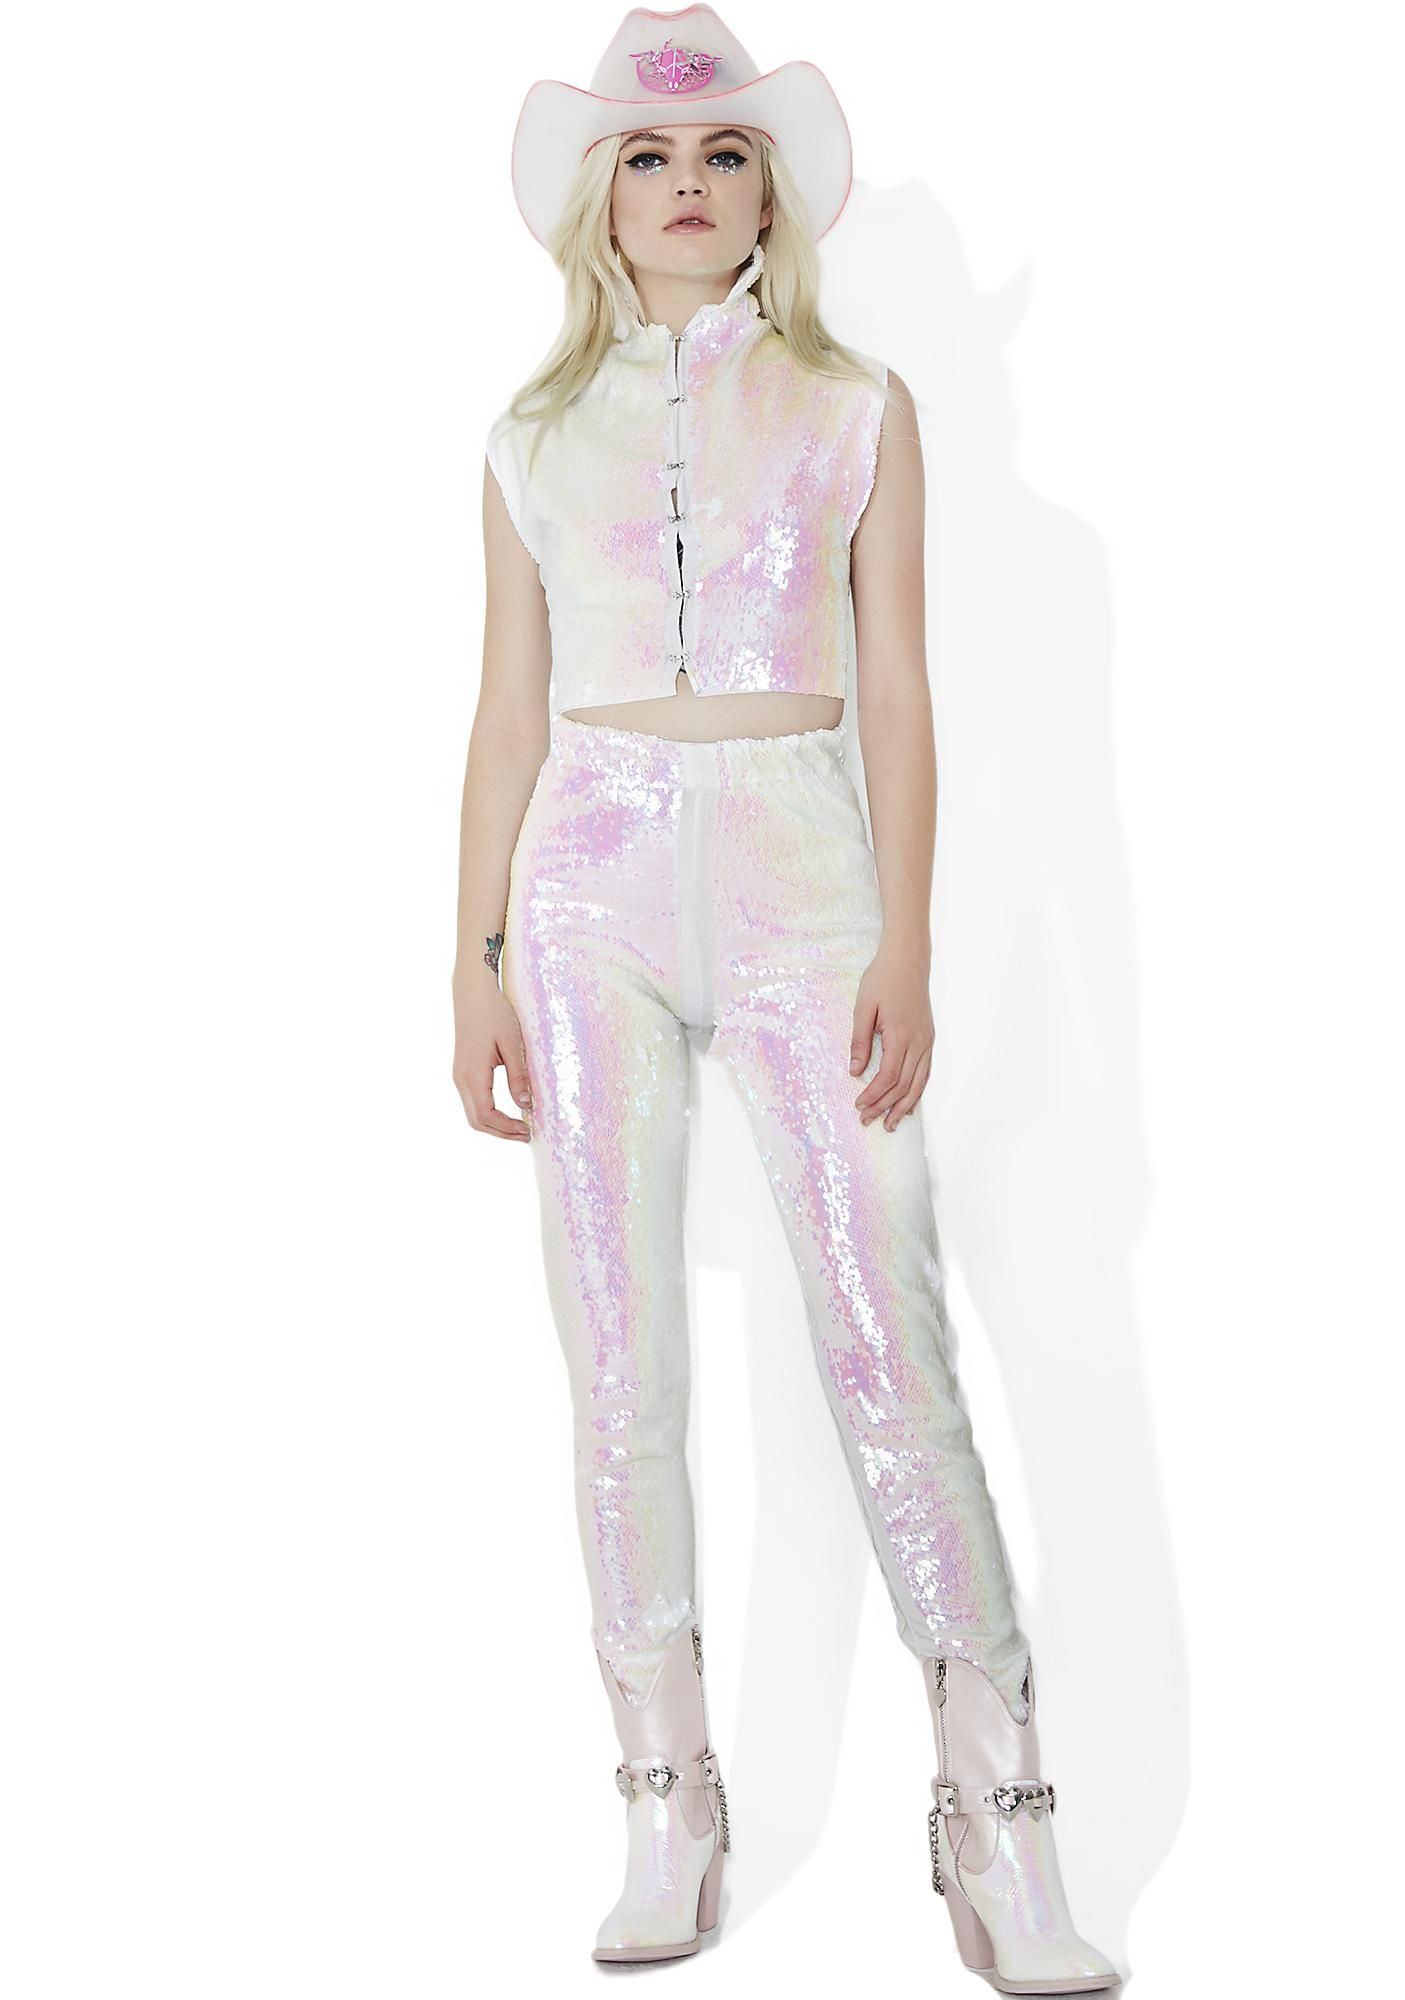 ESQAPE Jewel Two Piece Set is gonna blind 'em wit yer fierceness, bb. Shine bright in this dope af matching set that features a super shiny iridescent sequin construction, sleeveless crop top with a hook front closure and collared neckline, and slim-fitting pants with a stretchy waistband and mid-rise fit.